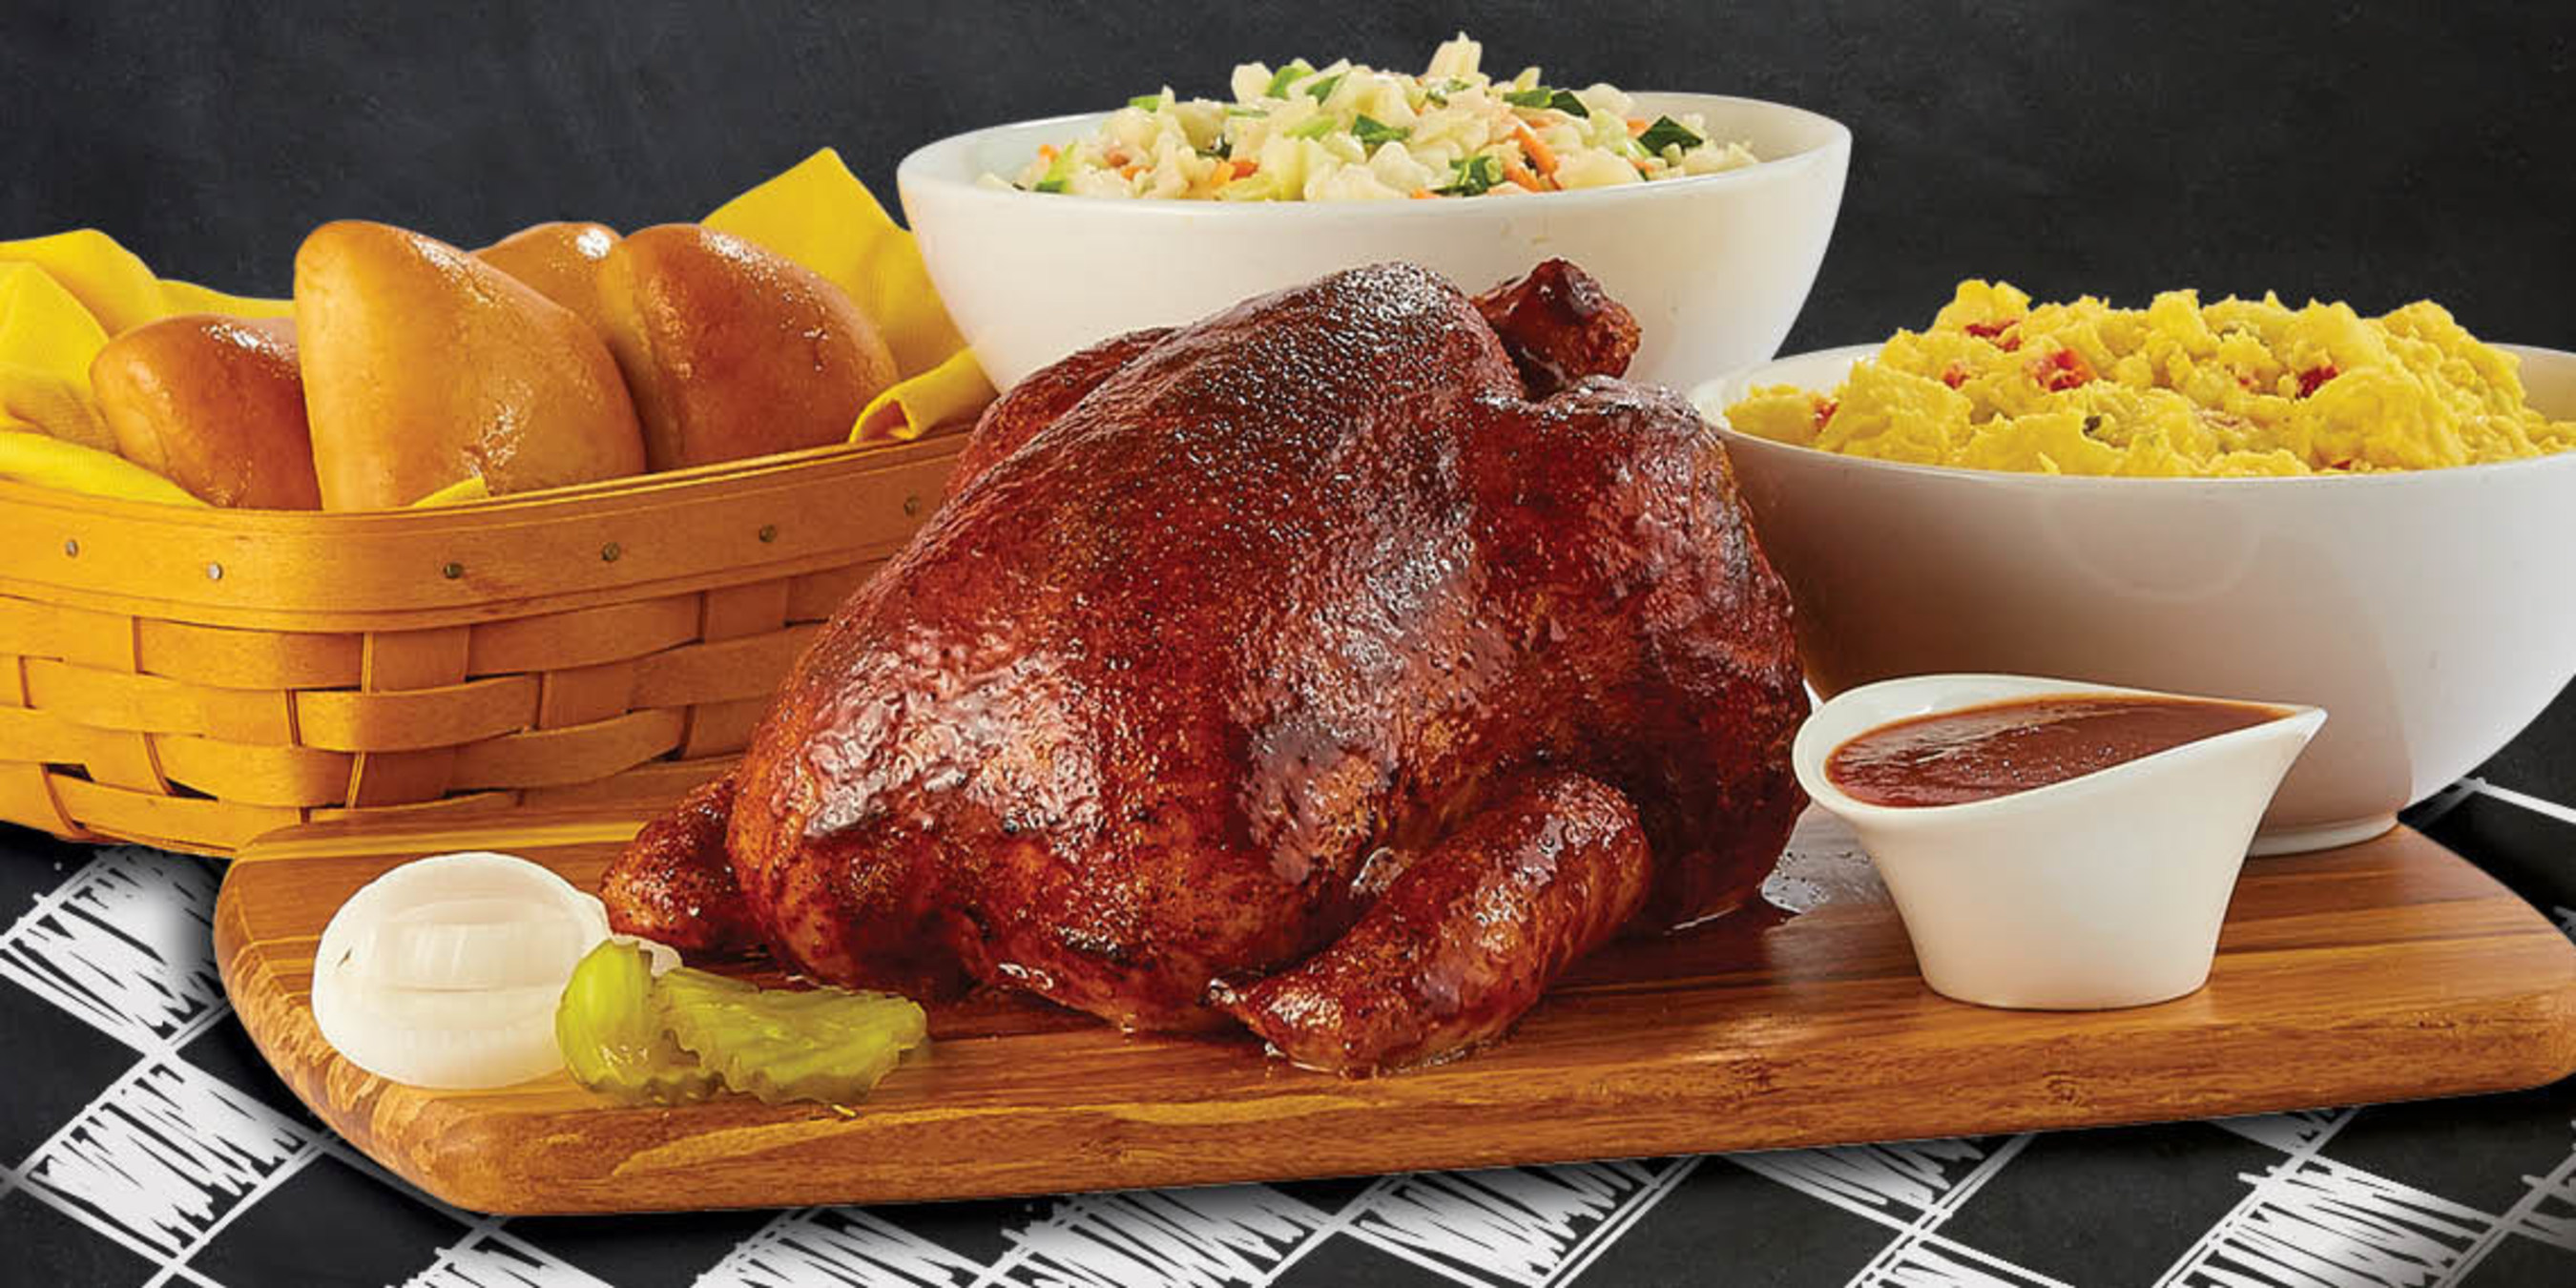 Dickey's Barbecue Pit launches whole smoked chicken available in new Chicknic Pack - raised without antibiotics. Starting August 1!